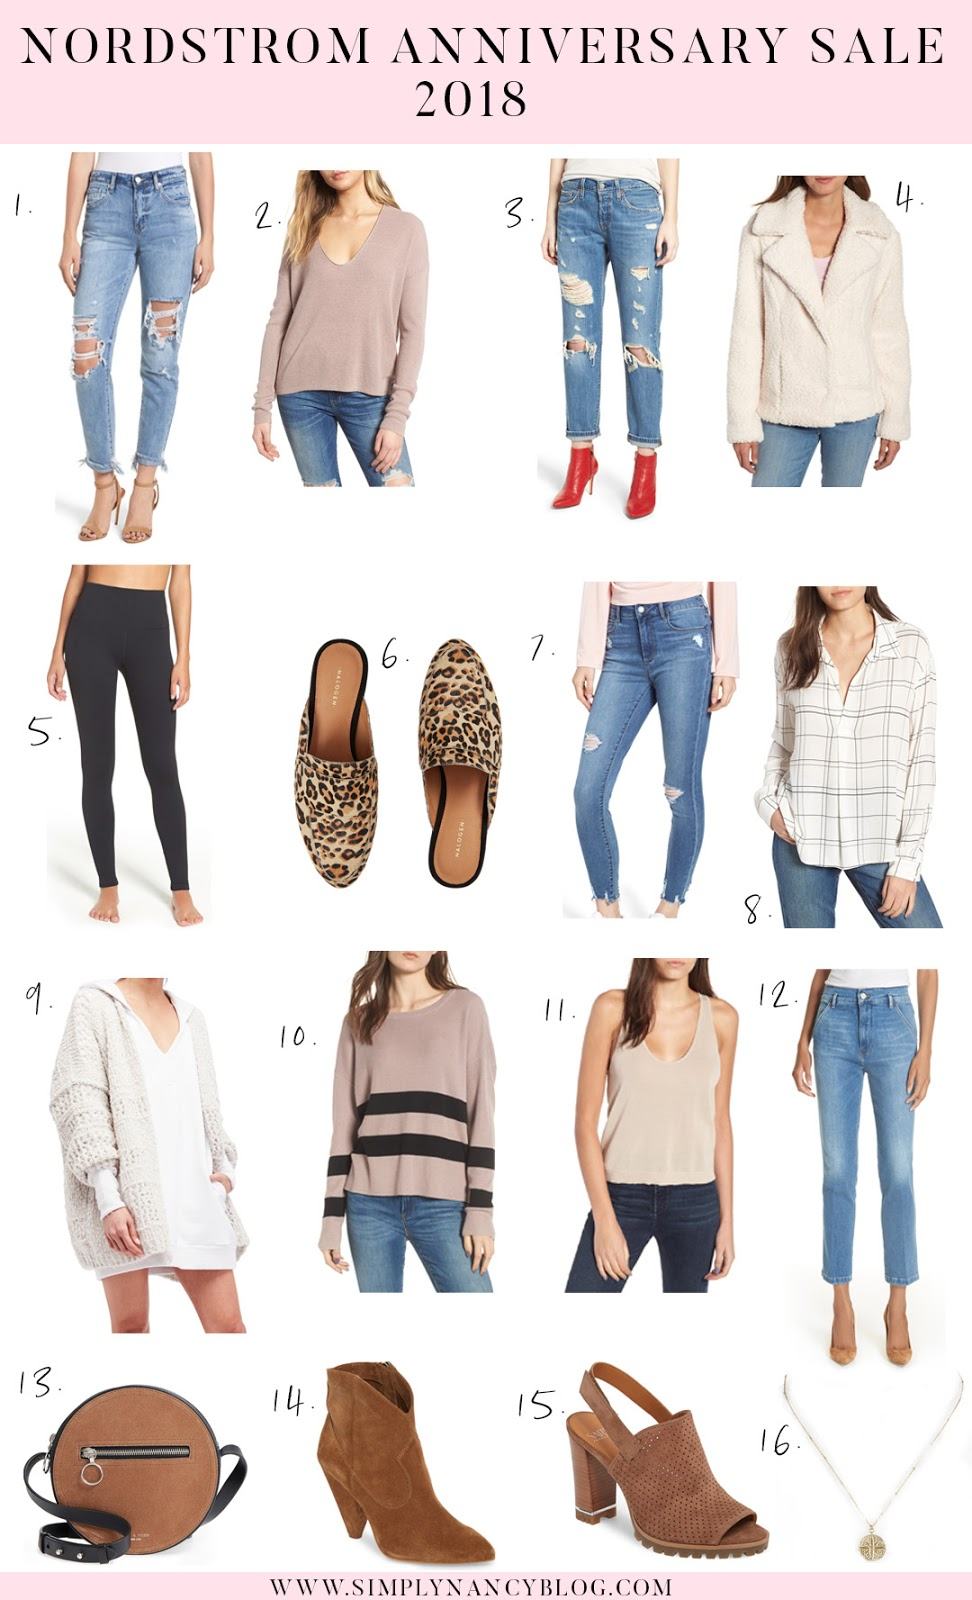 nordstrom anniversary sale guide 2018